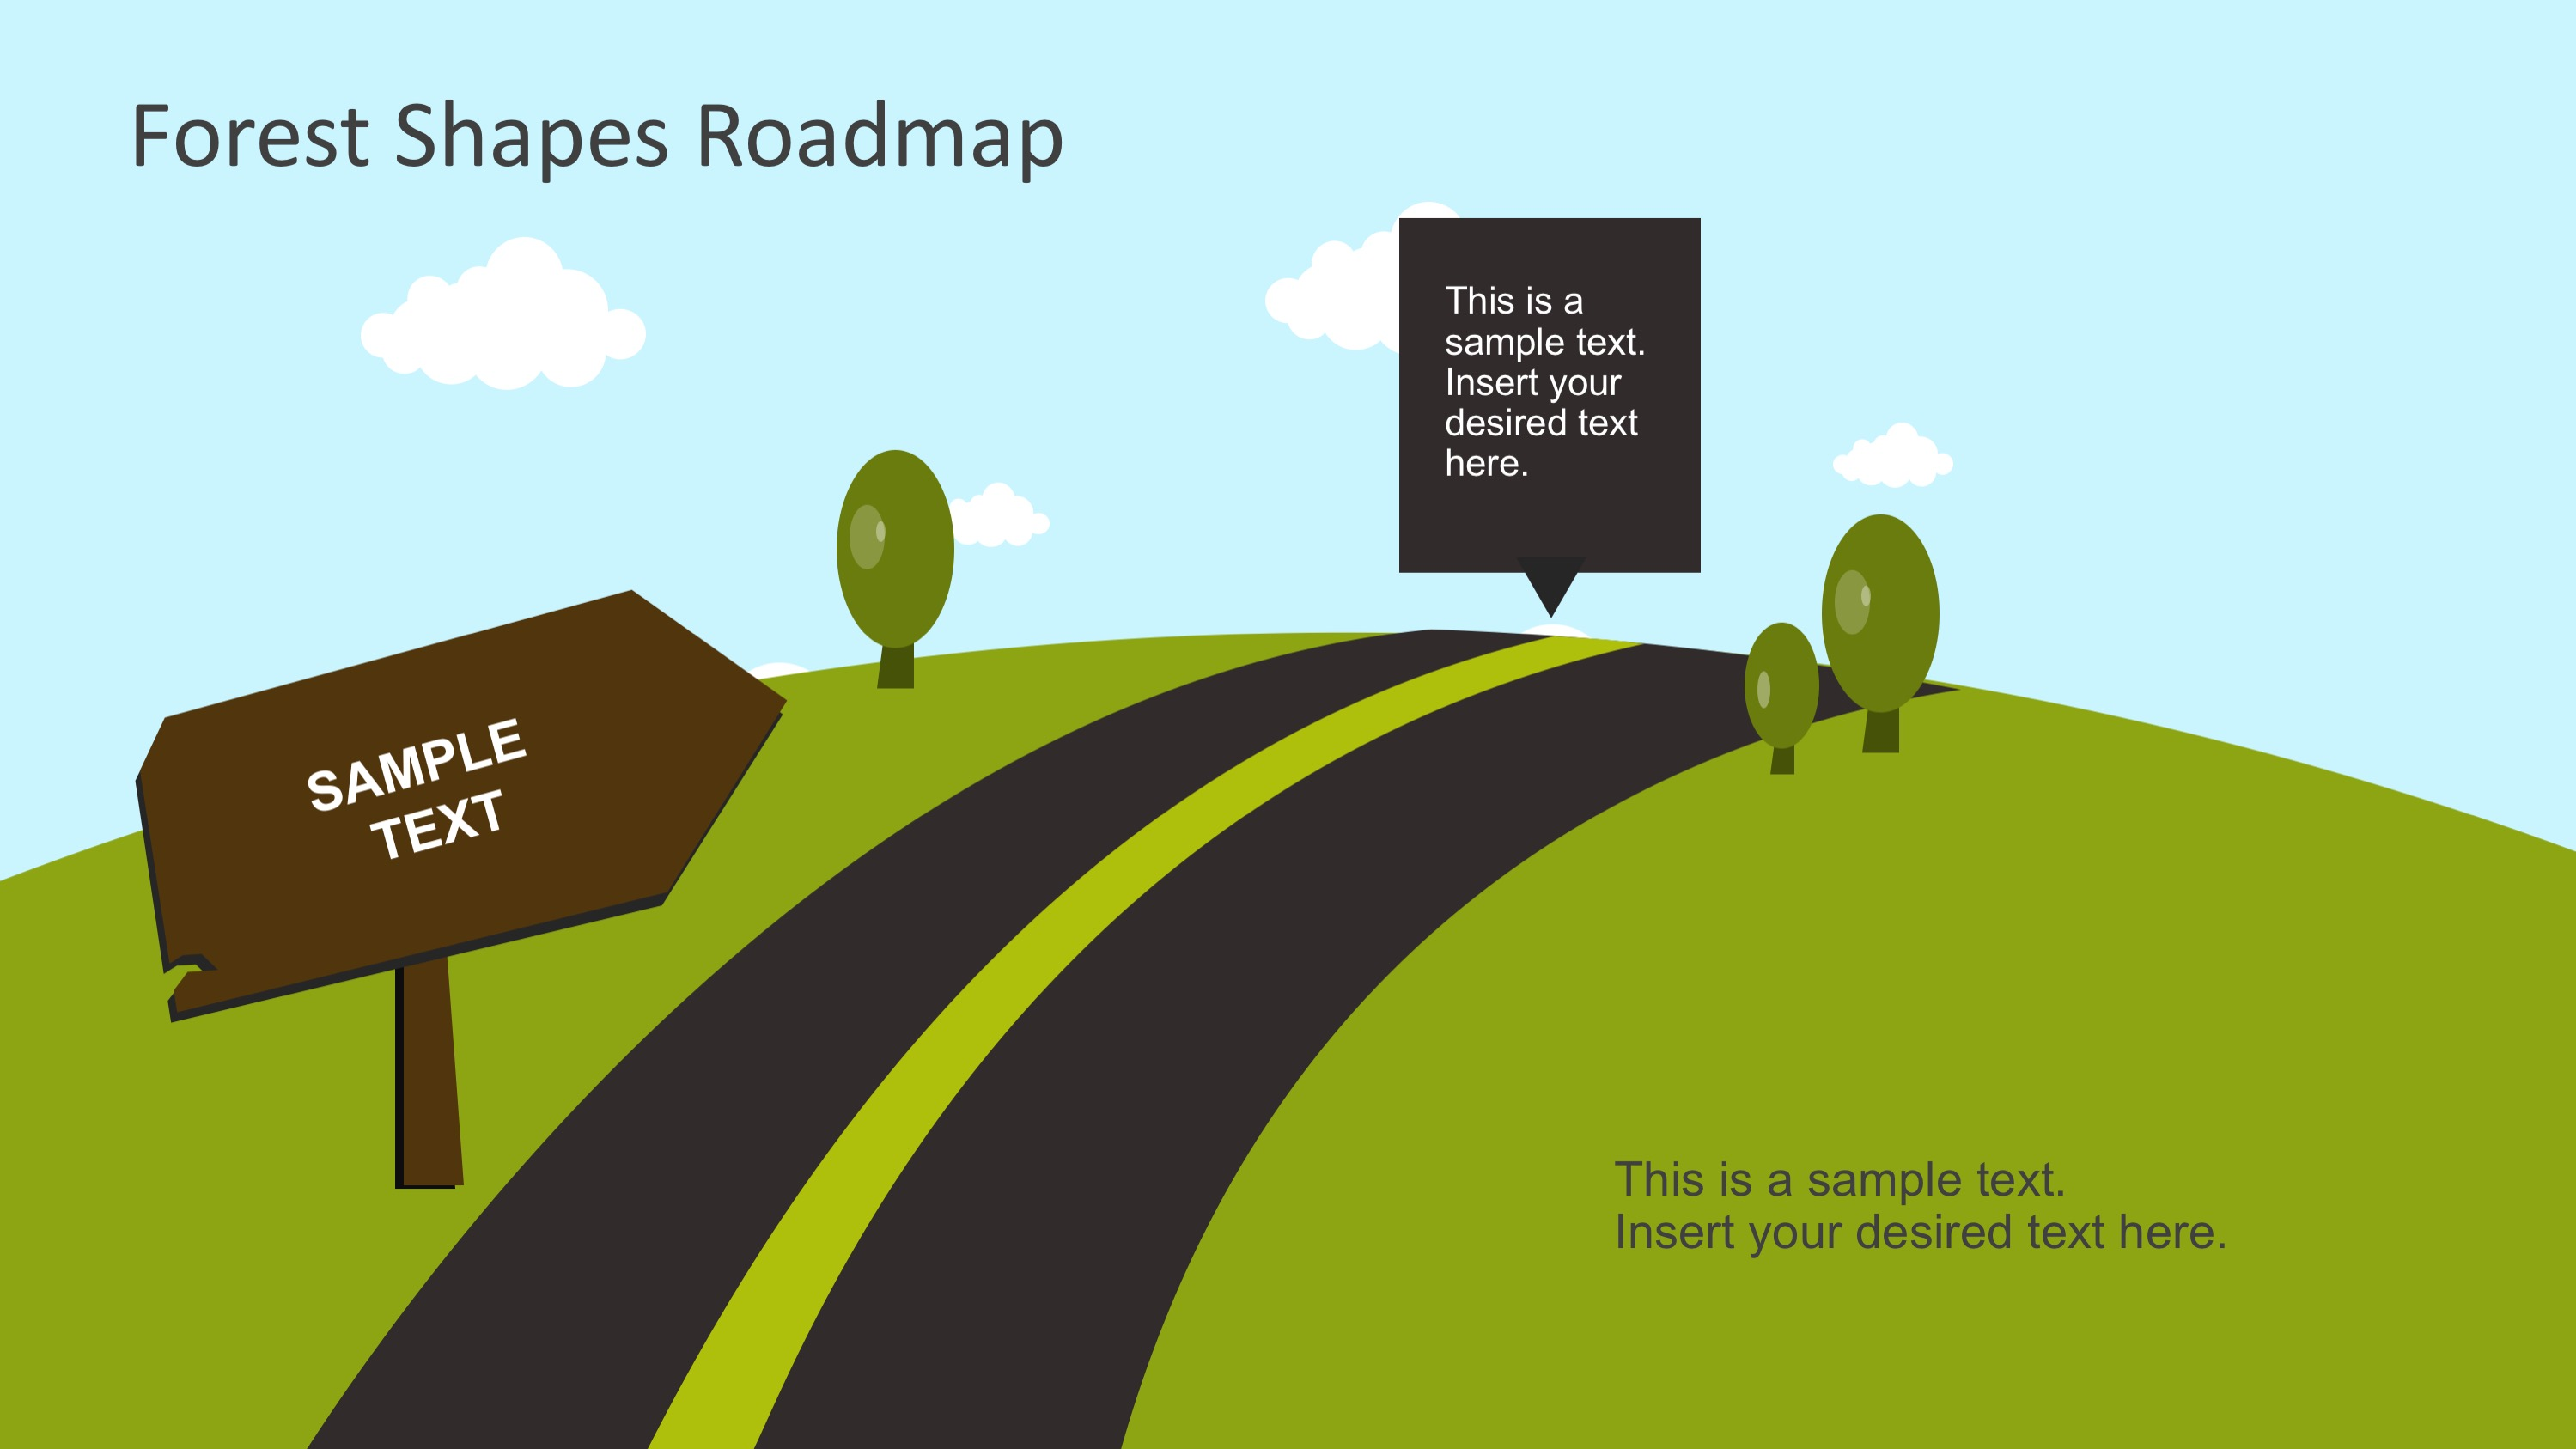 Free Forest Shapes Roadmap PowerPoint Template on free land maps, free transportation maps, free addresses, free north america map, free property line maps, free interactive maps, free topo maps, free maritime maps, free movies, free marine maps, free railroad maps, free snowmobile maps, free world maps, clip art free street maps, free wall maps, free lake maps, free elevation maps, free historic maps, free cell phone, free circle maps,